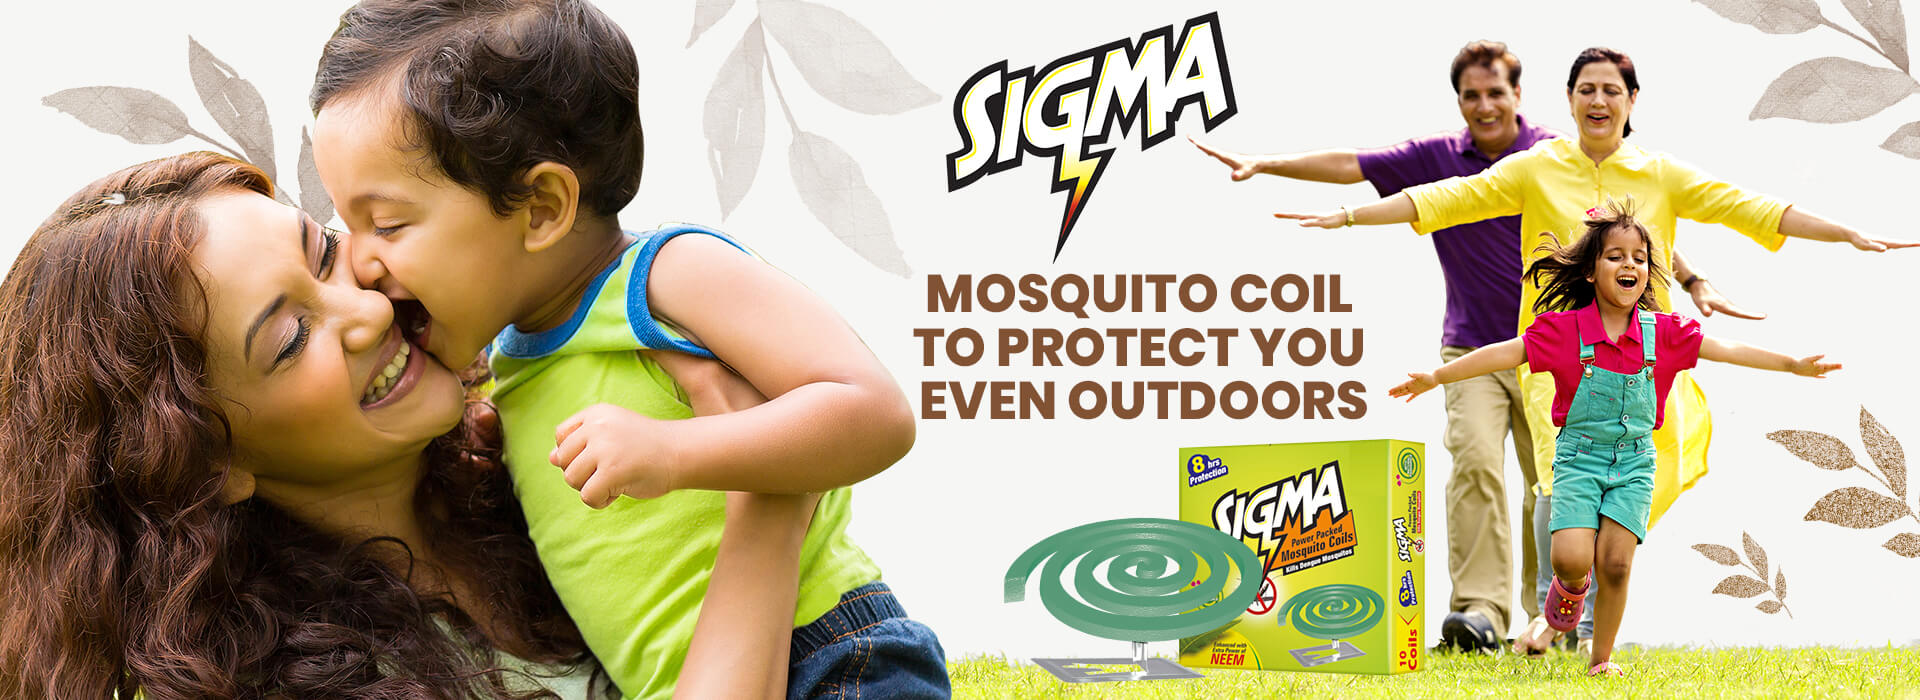 sigma mosquito coils to protect you